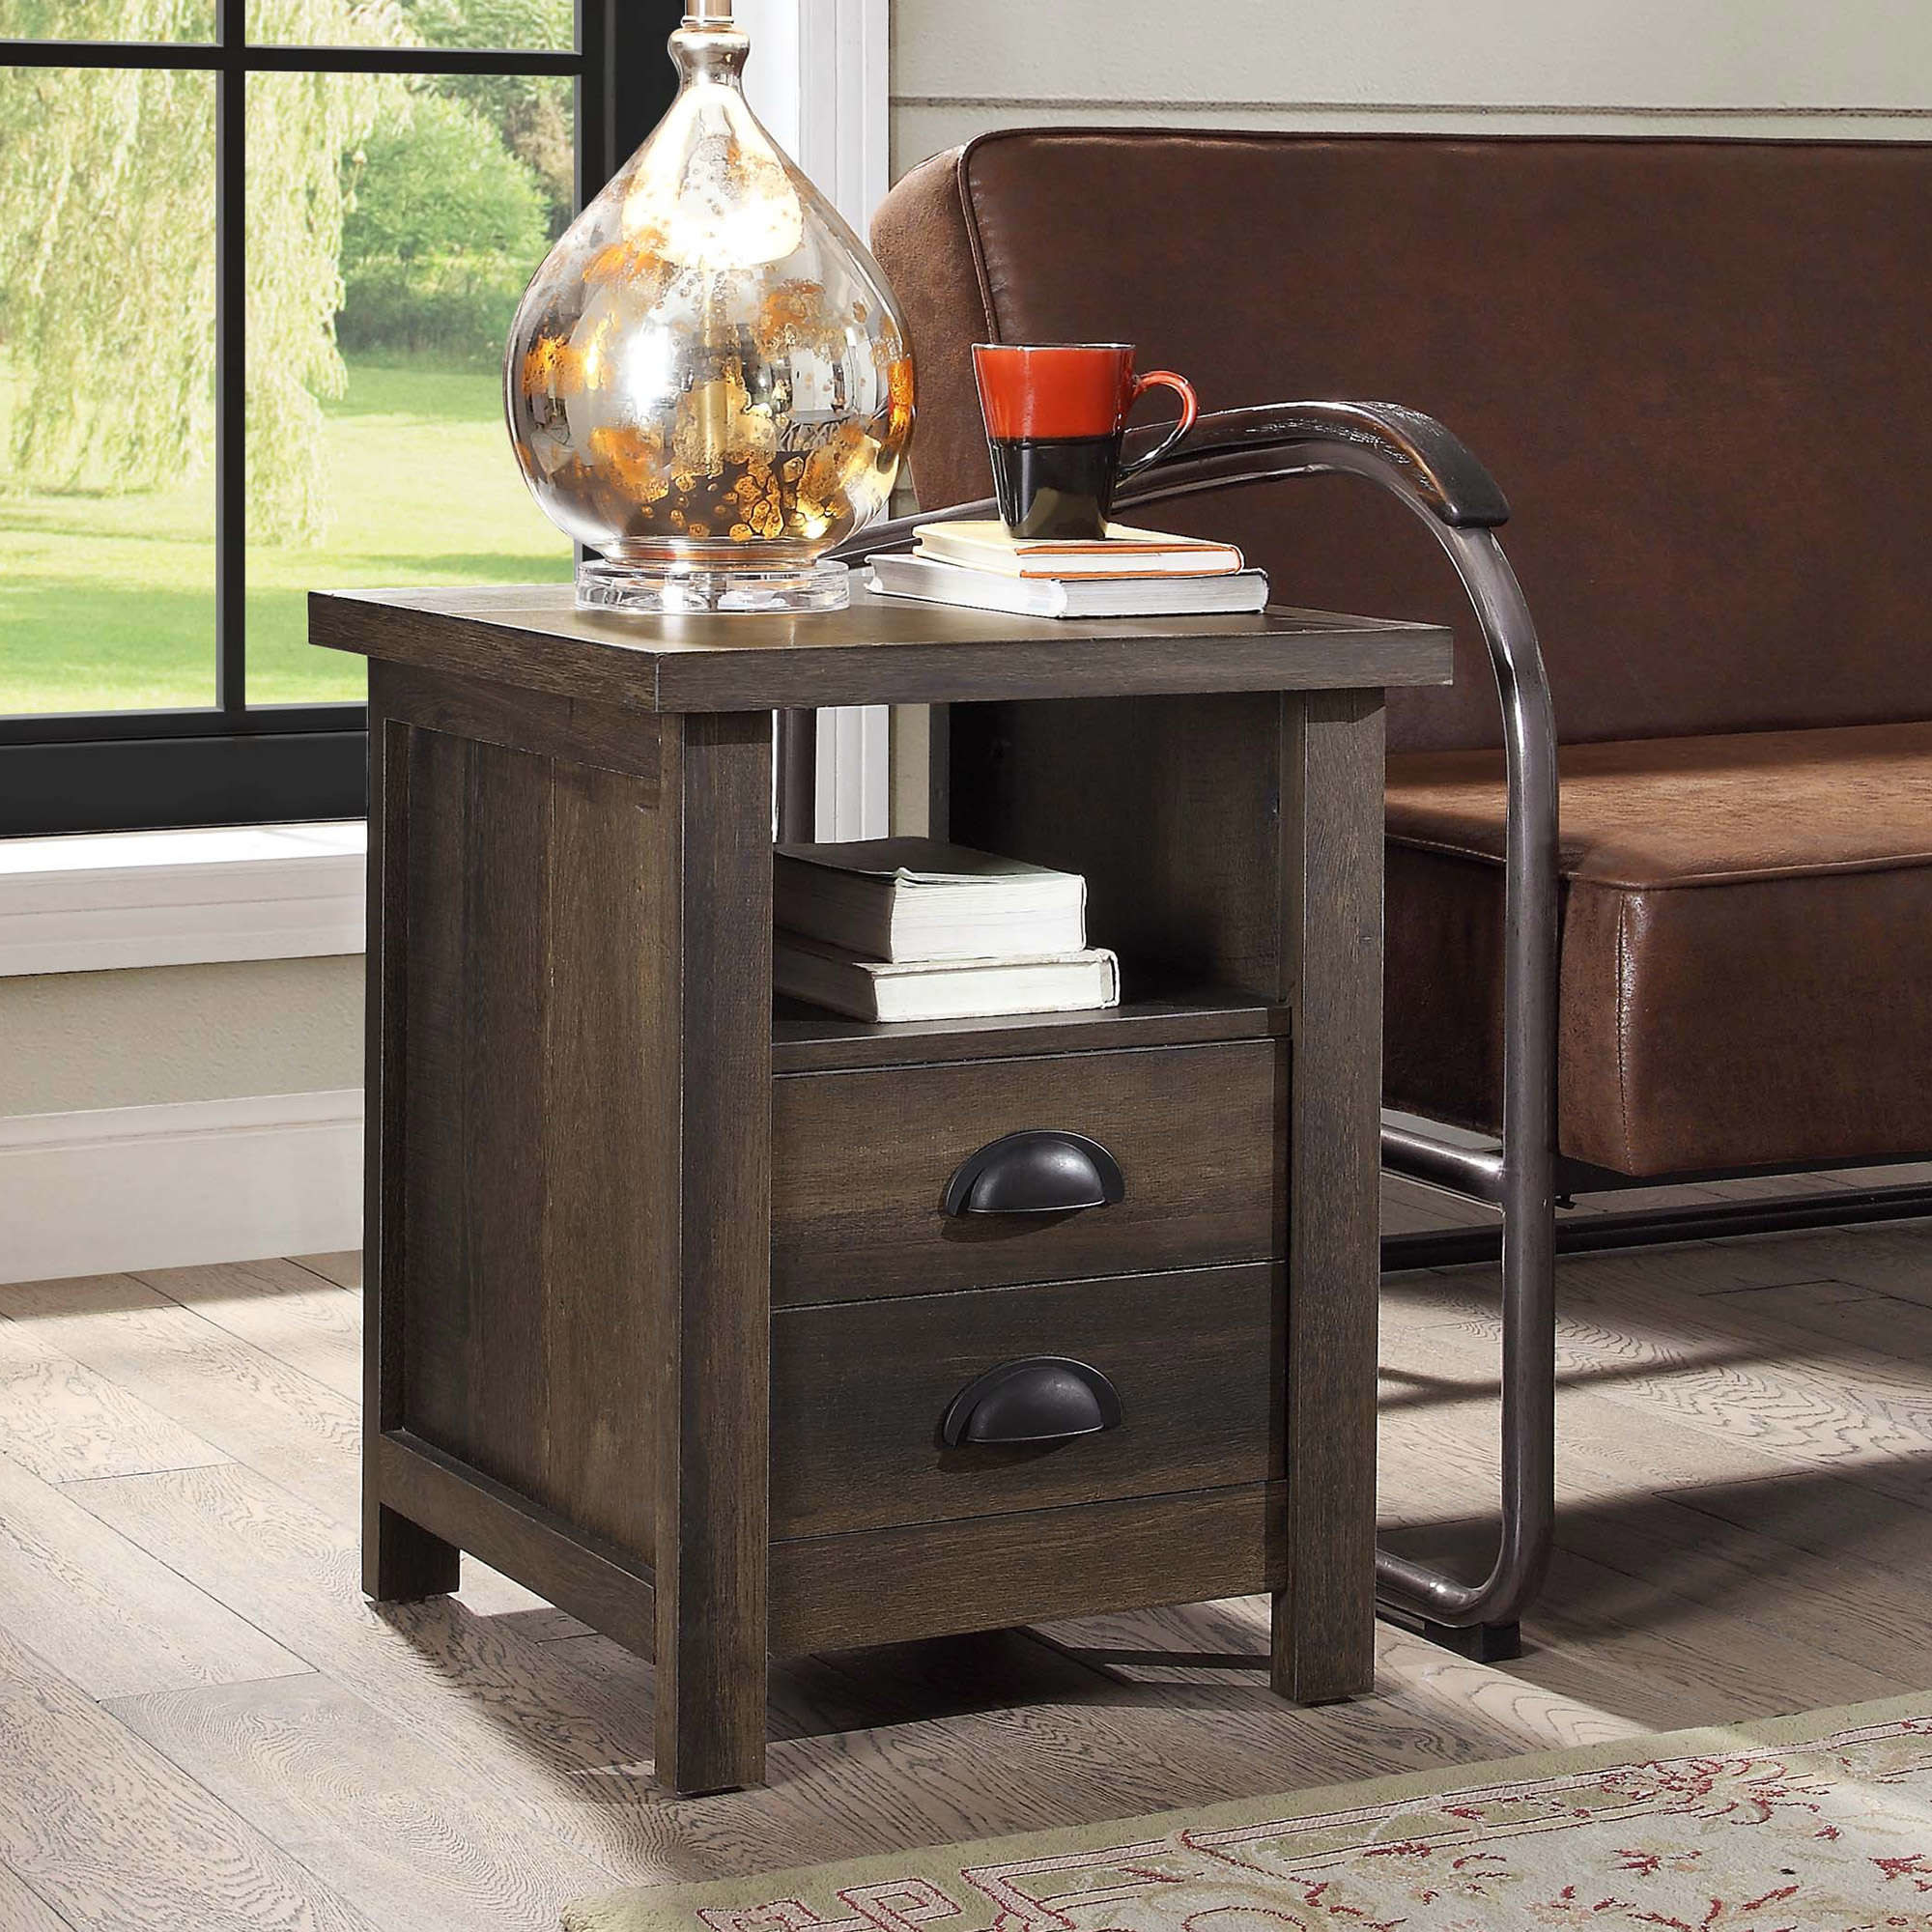 the dark wooden end table with two draws and one shelf